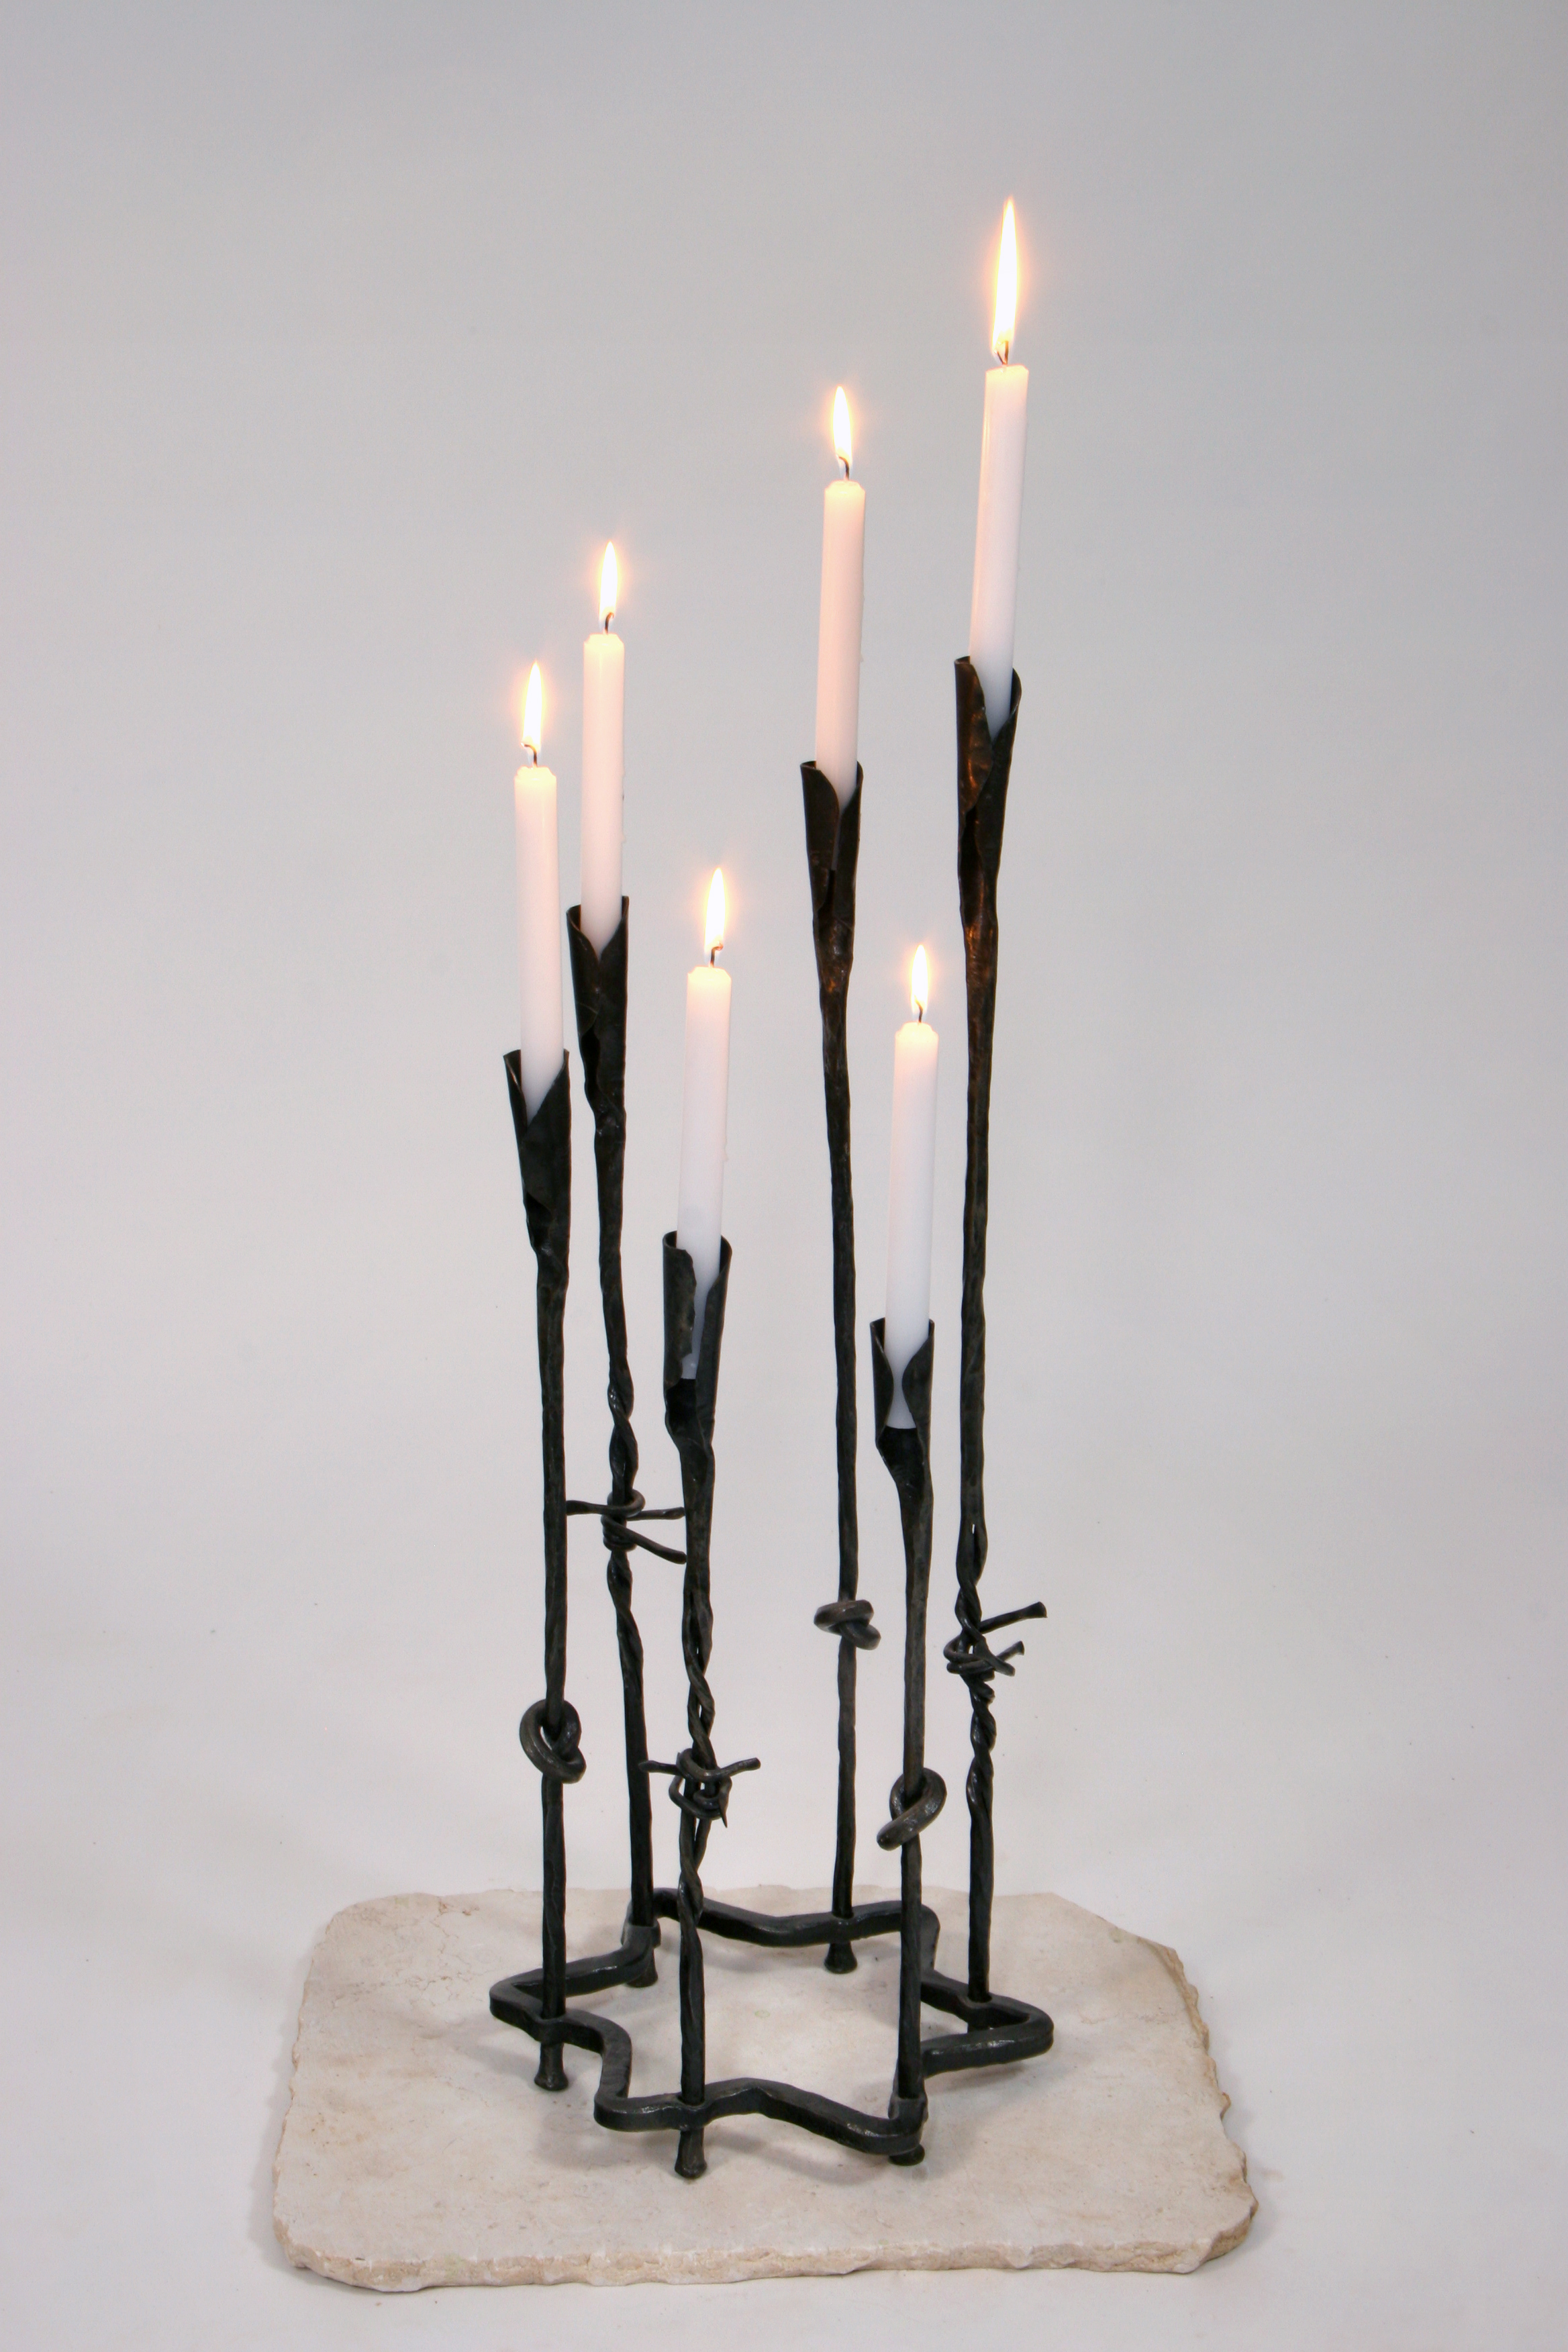 '6 million (small)' - Unique Holocaust Memorial Candle of Forged Iron